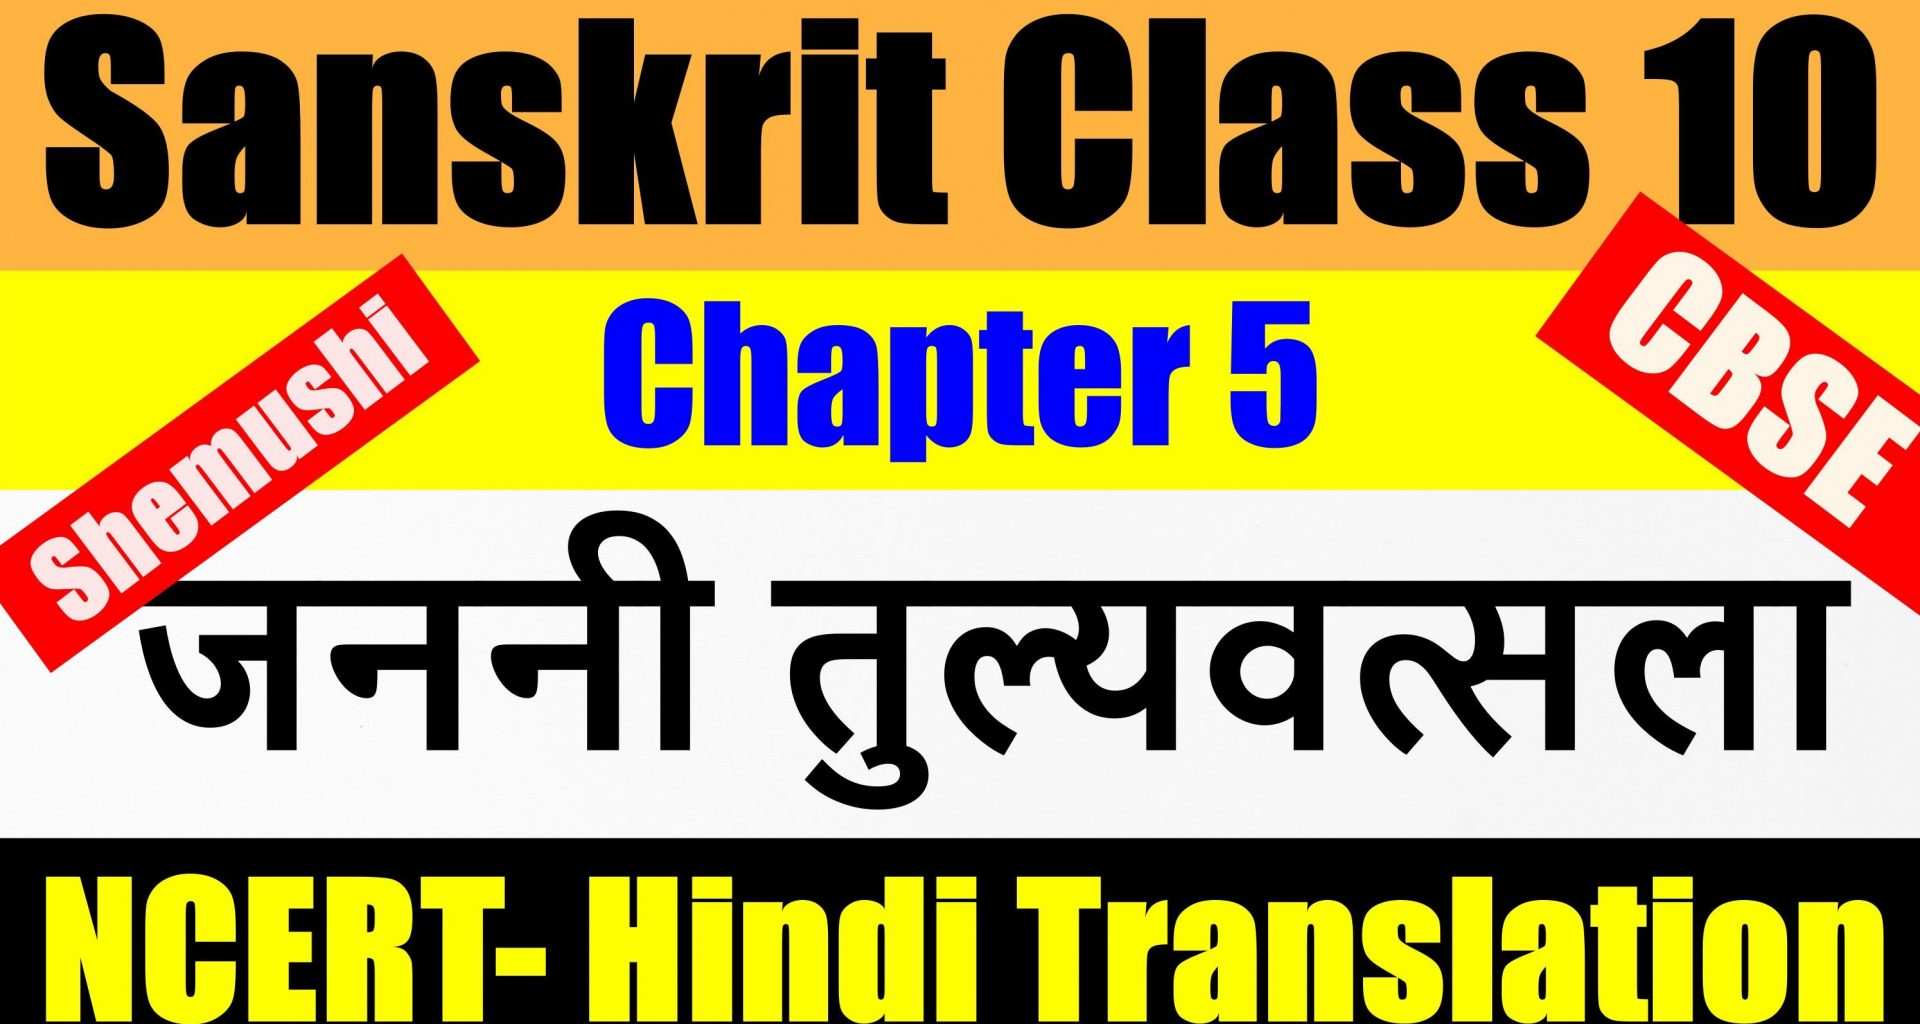 Sanskrit Class 10 Chapter 5 -जननी तुल्यवत्सला – Hindi & English Translation given below. Also, word meanings (शब्दार्थ:), अन्वयः, सरलार्थ (Hindi Translation & English Translation) are given